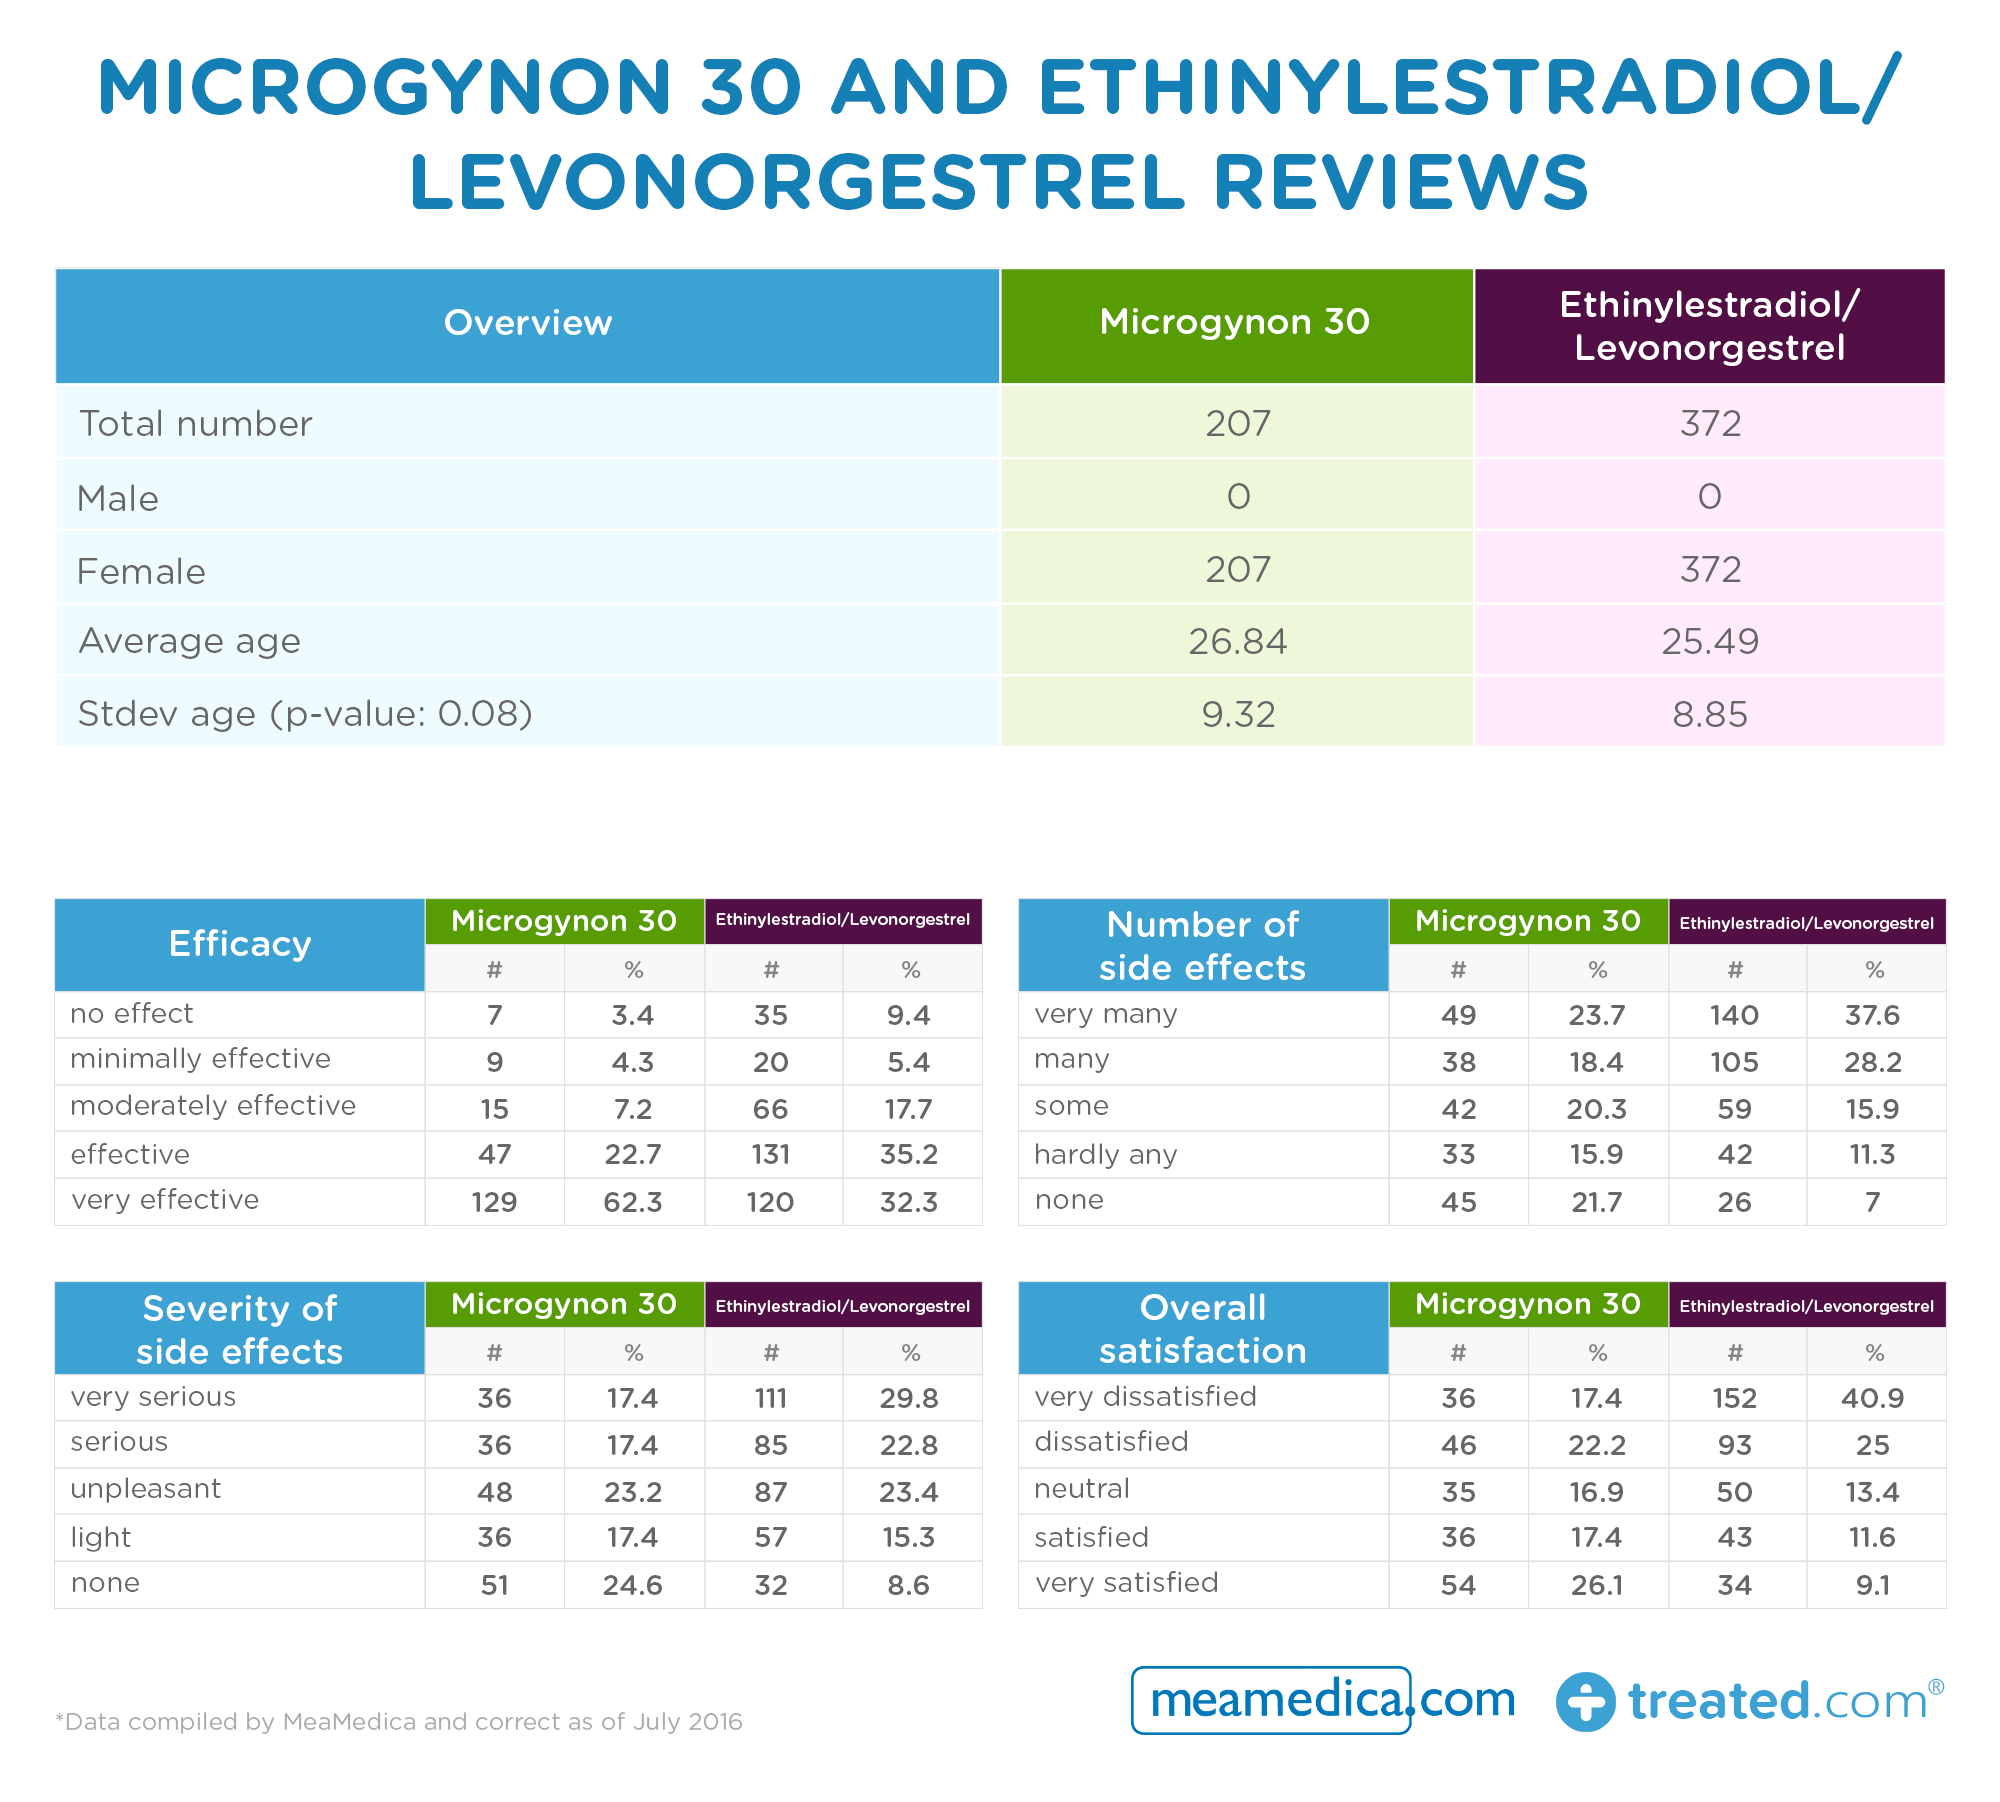 Microgynon 30 and Ethinylestradiol/Levonorgestrel reviews table